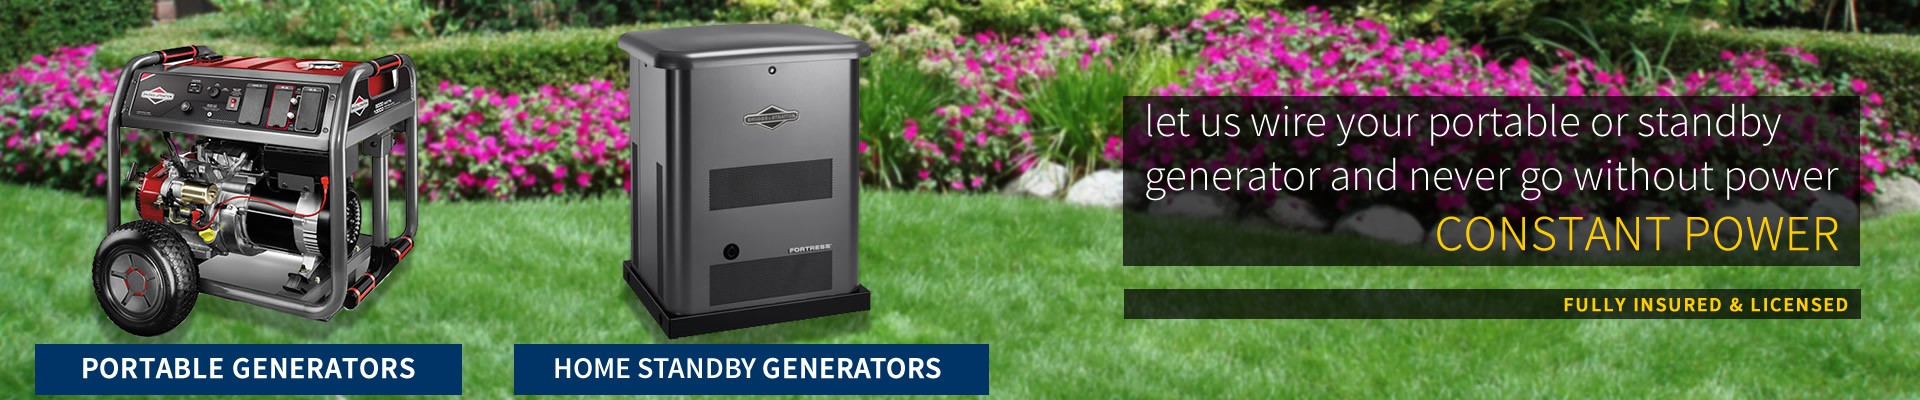 DE Small Electric - Residential Portable and Standby generator install